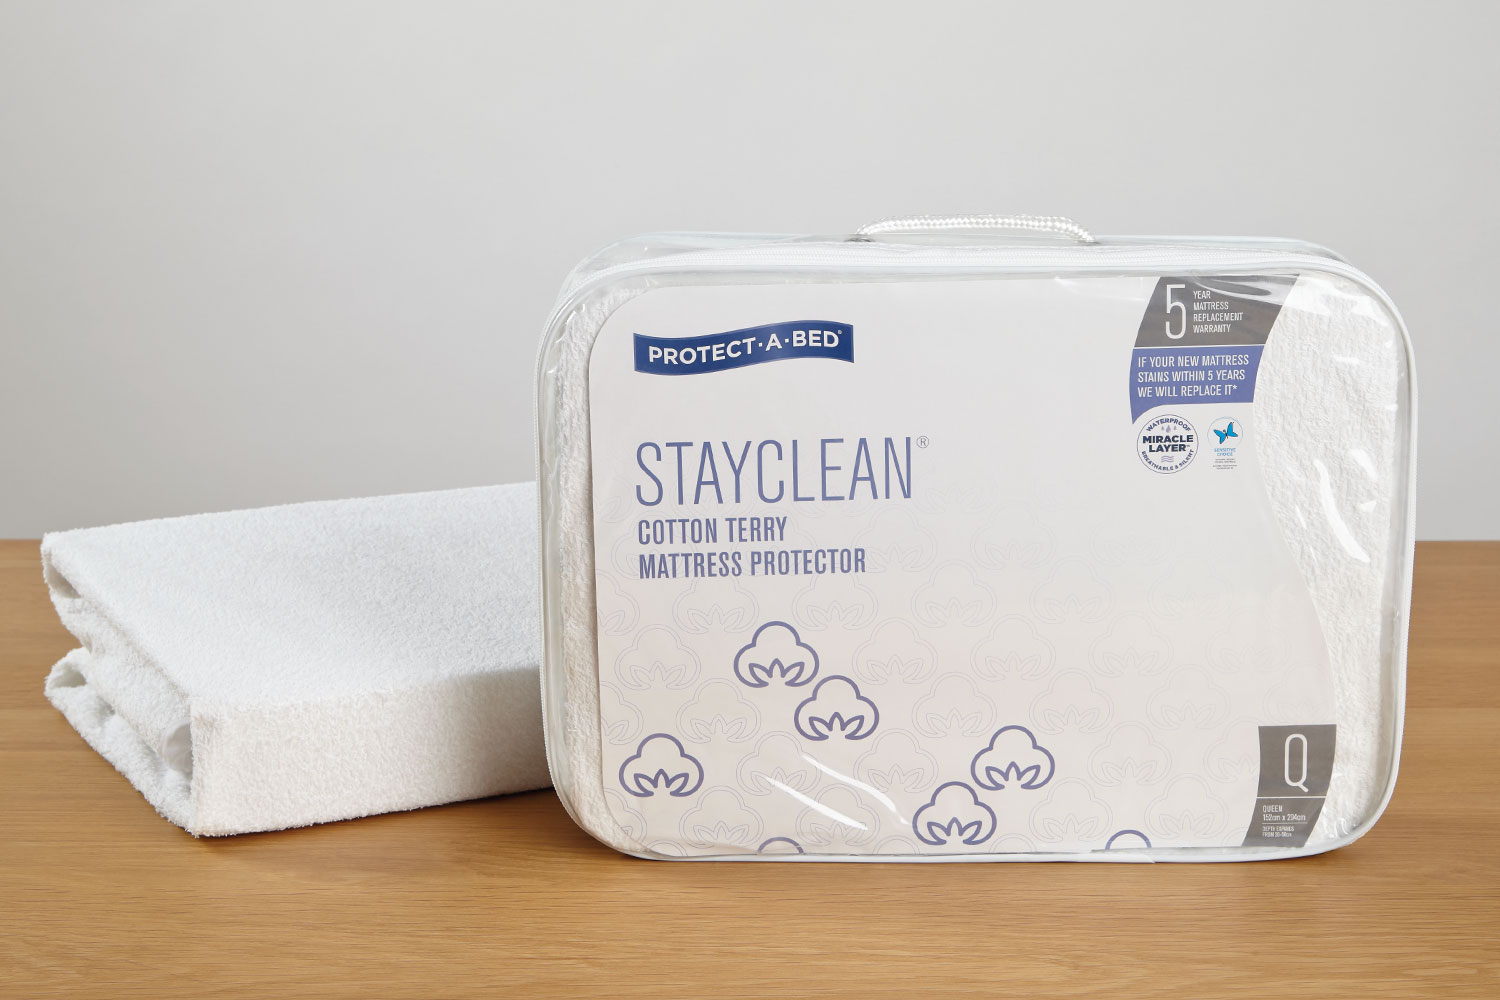 Stay Clean Mattress Protector by Protect-A-Bed at Harvey Norman New Zealand